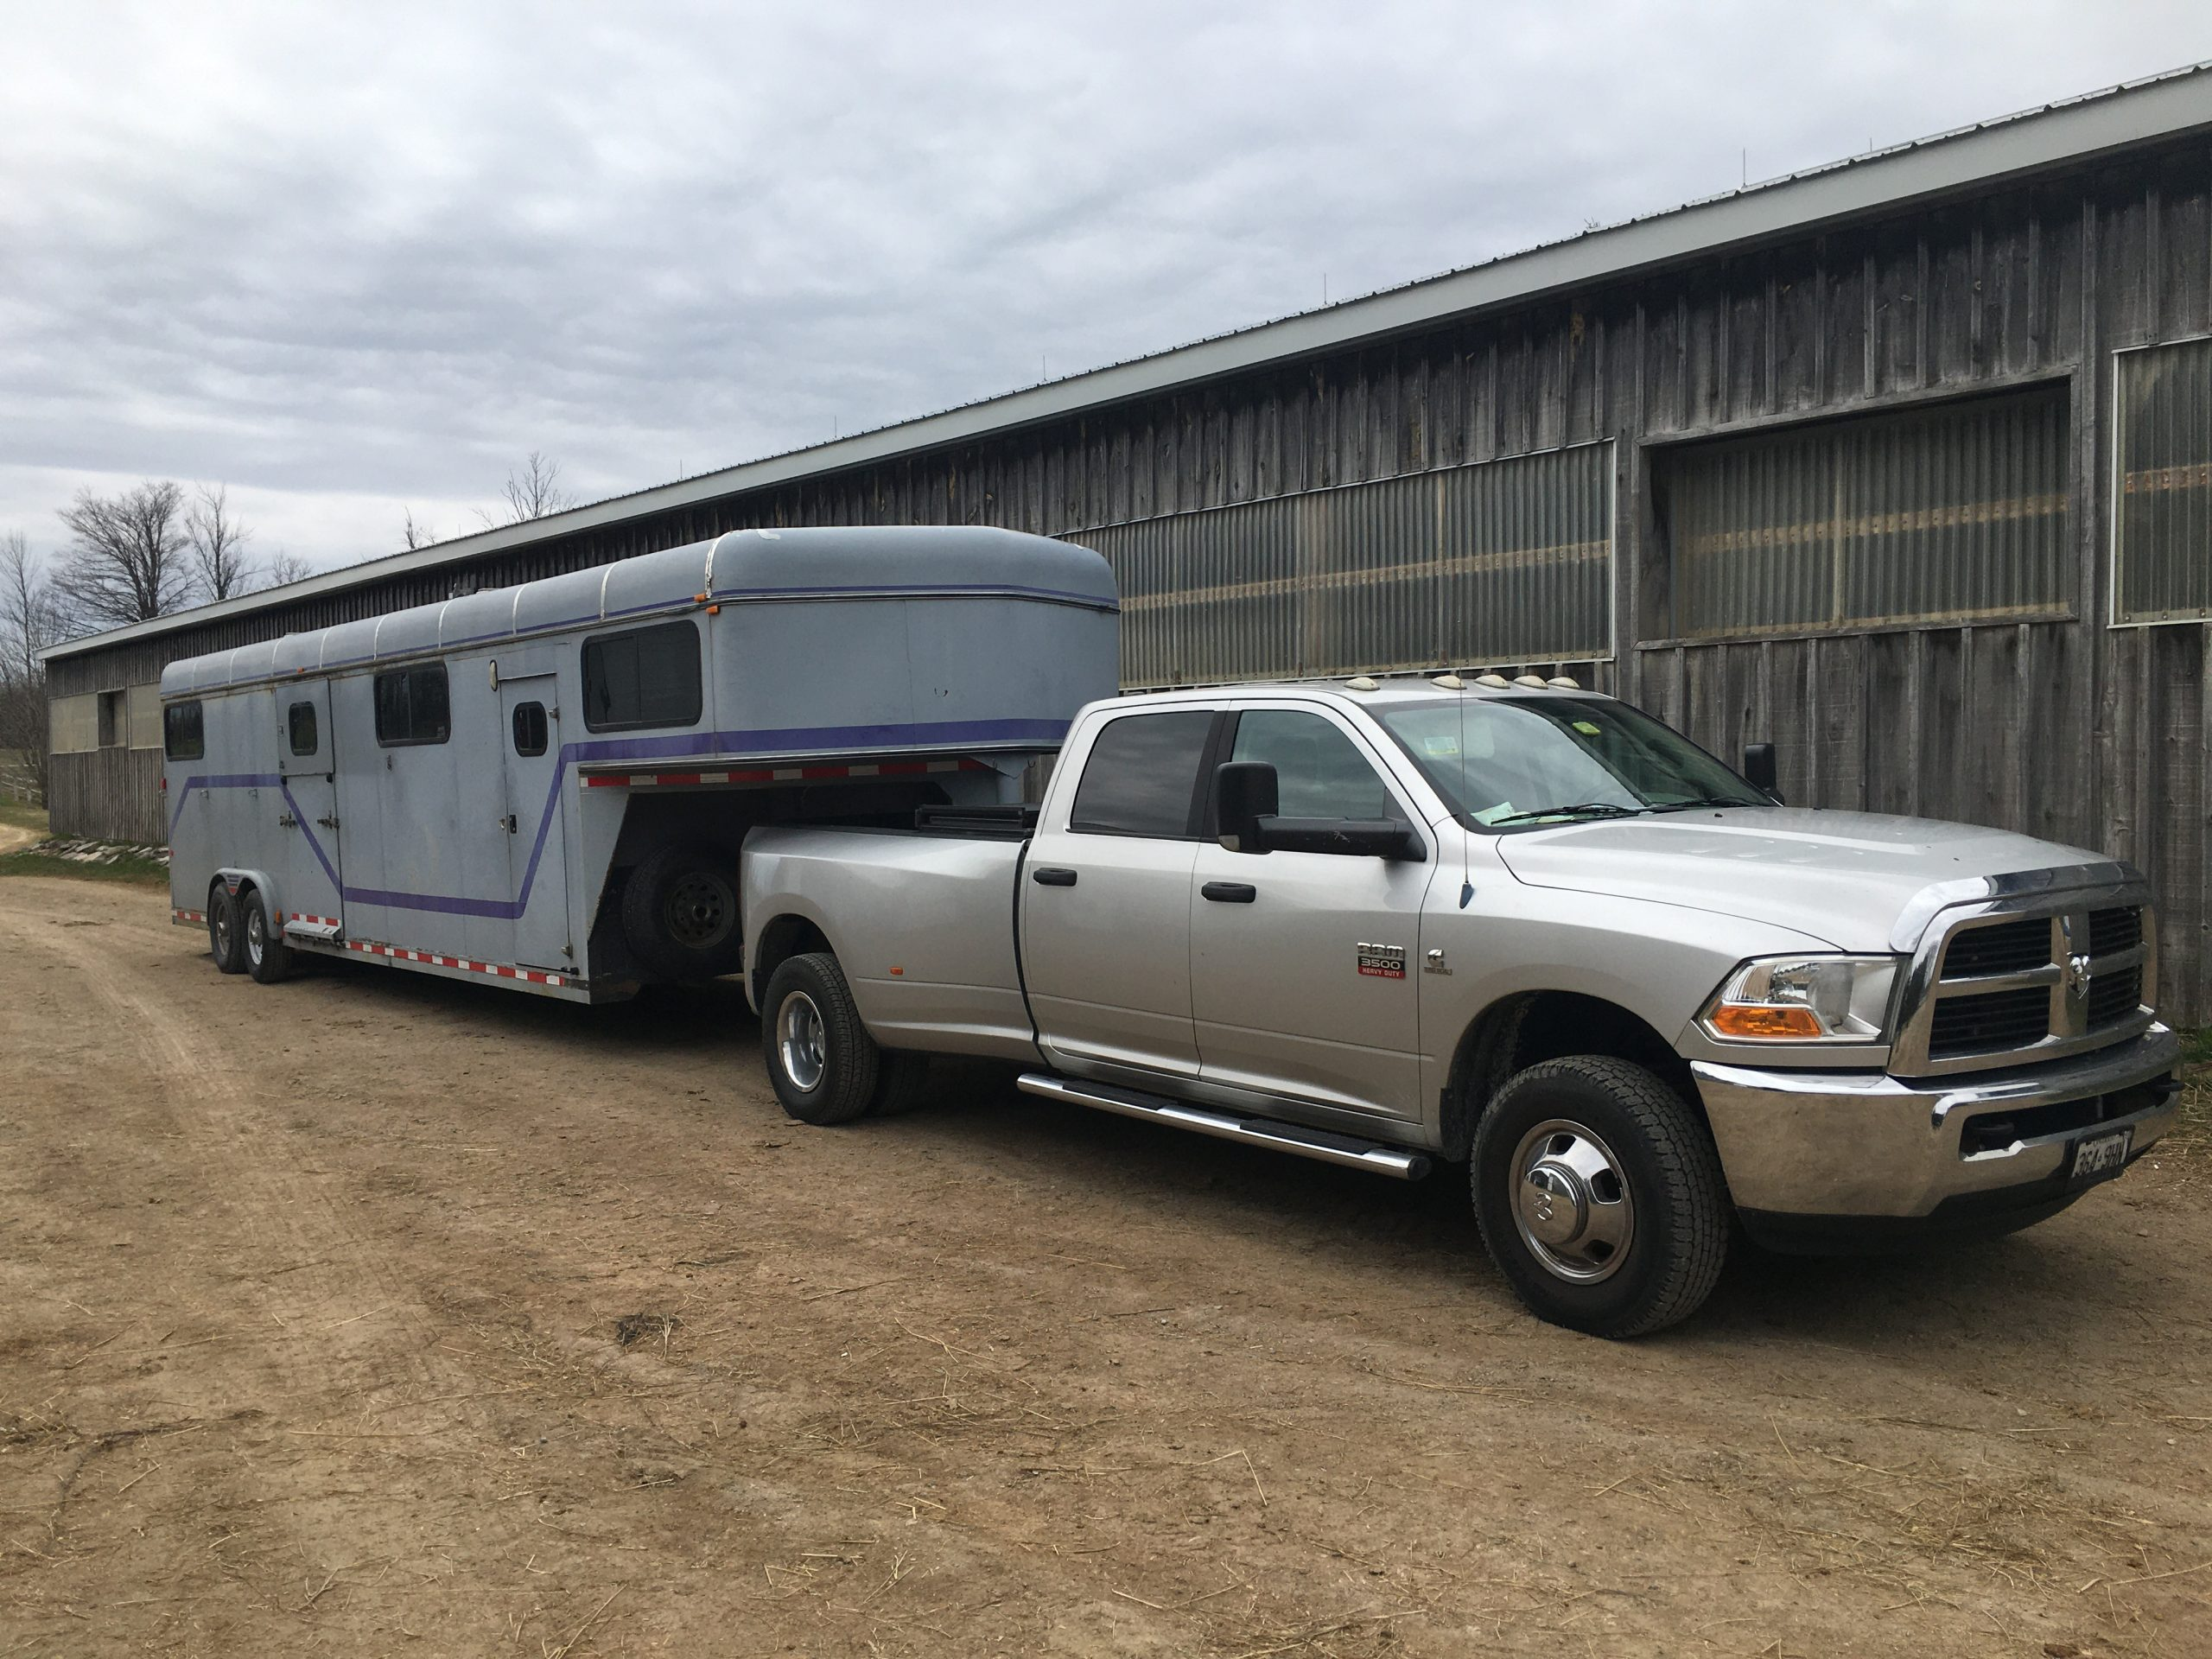 Horse trailer and pickup truck